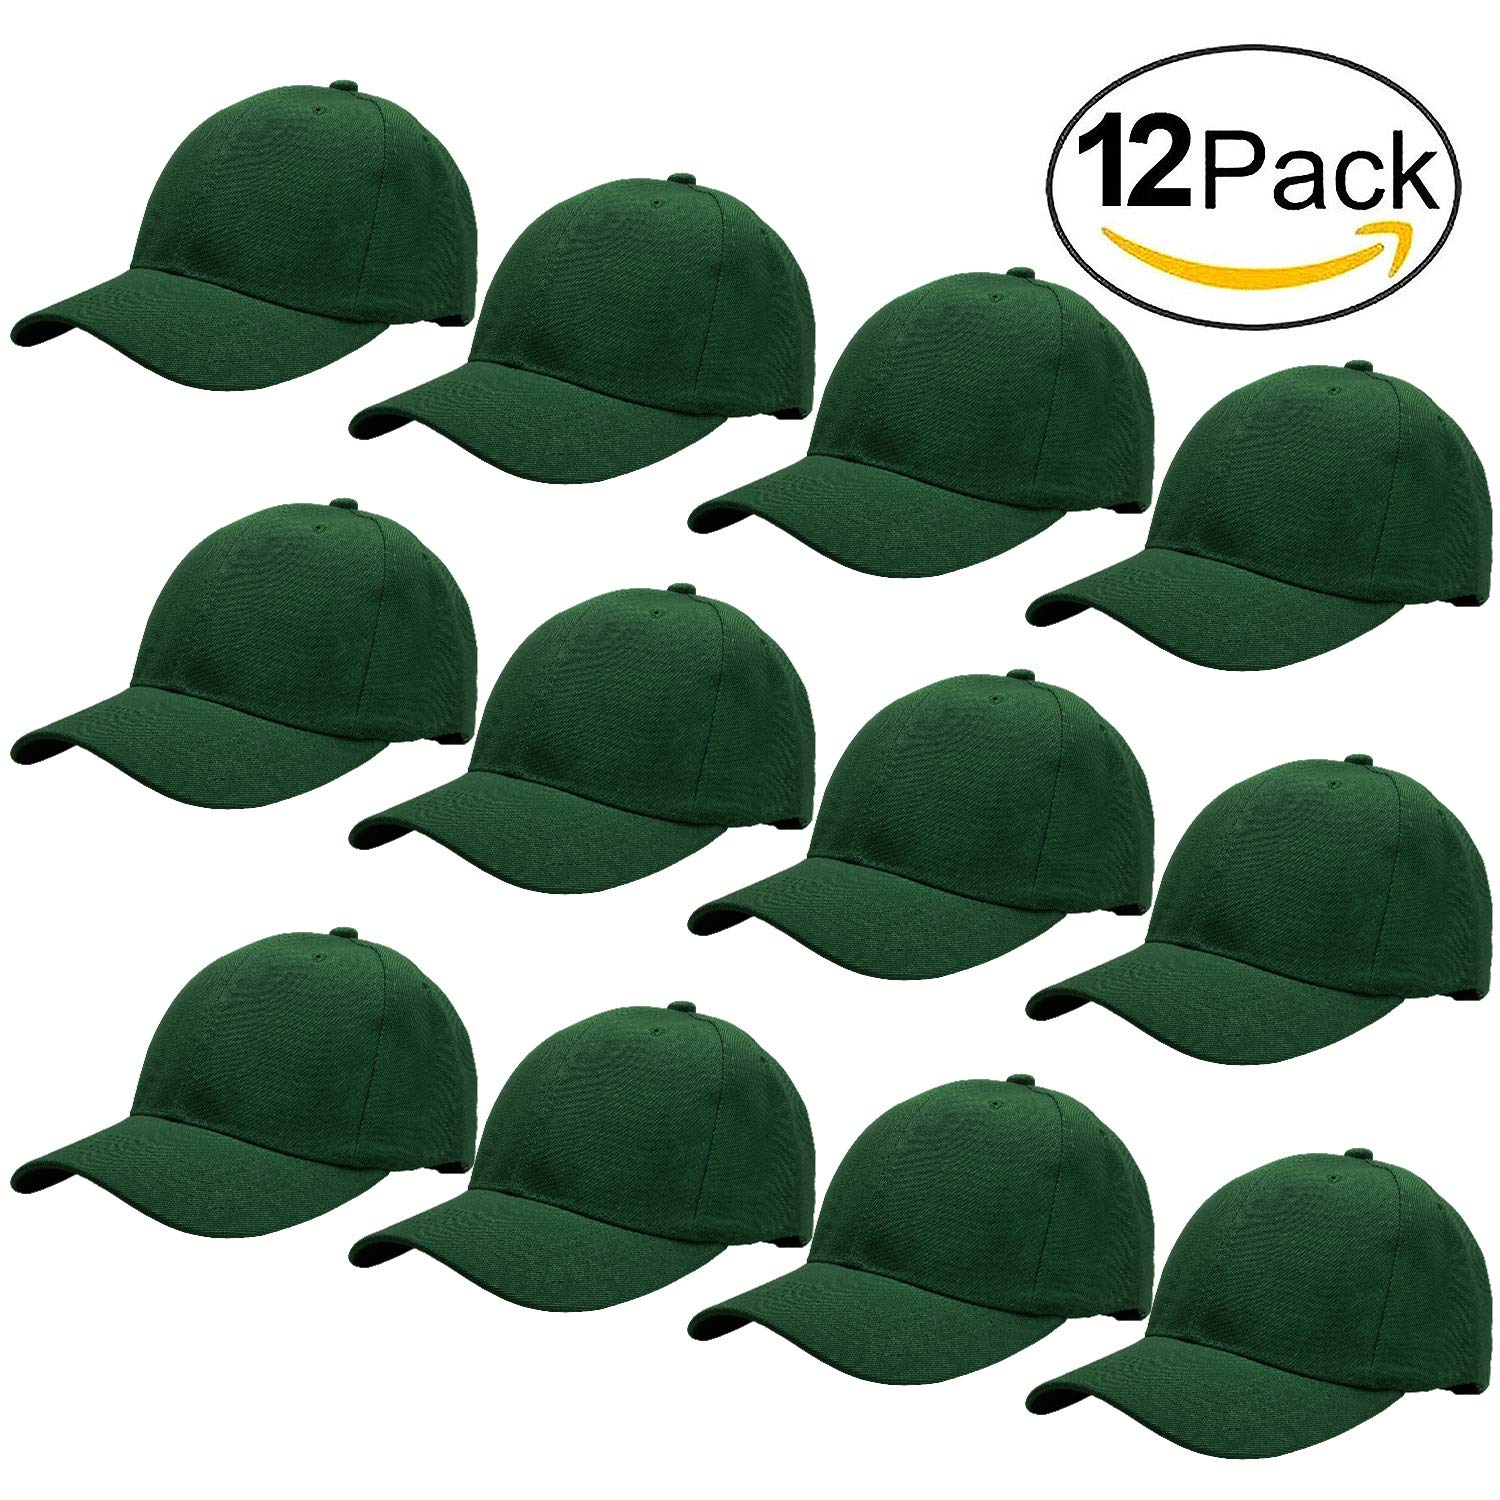 Falari Wholesale 12-Pack Baseball Cap Adjustable Size Velcro Closed Plain Blank Solid Color 63-G012-ASSORTED1